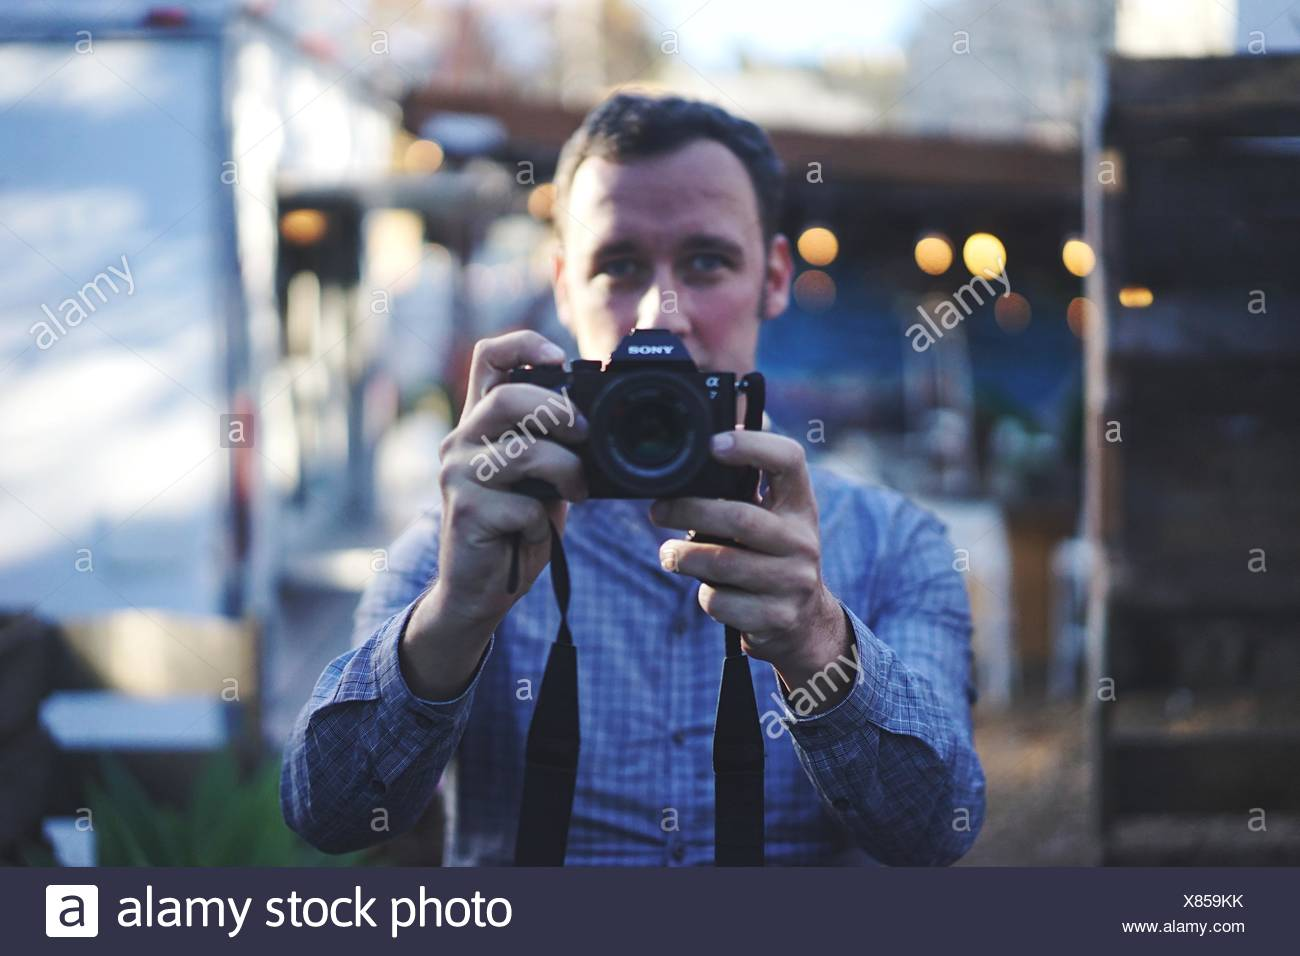 Portrait Of A Male Photographer - Stock Image